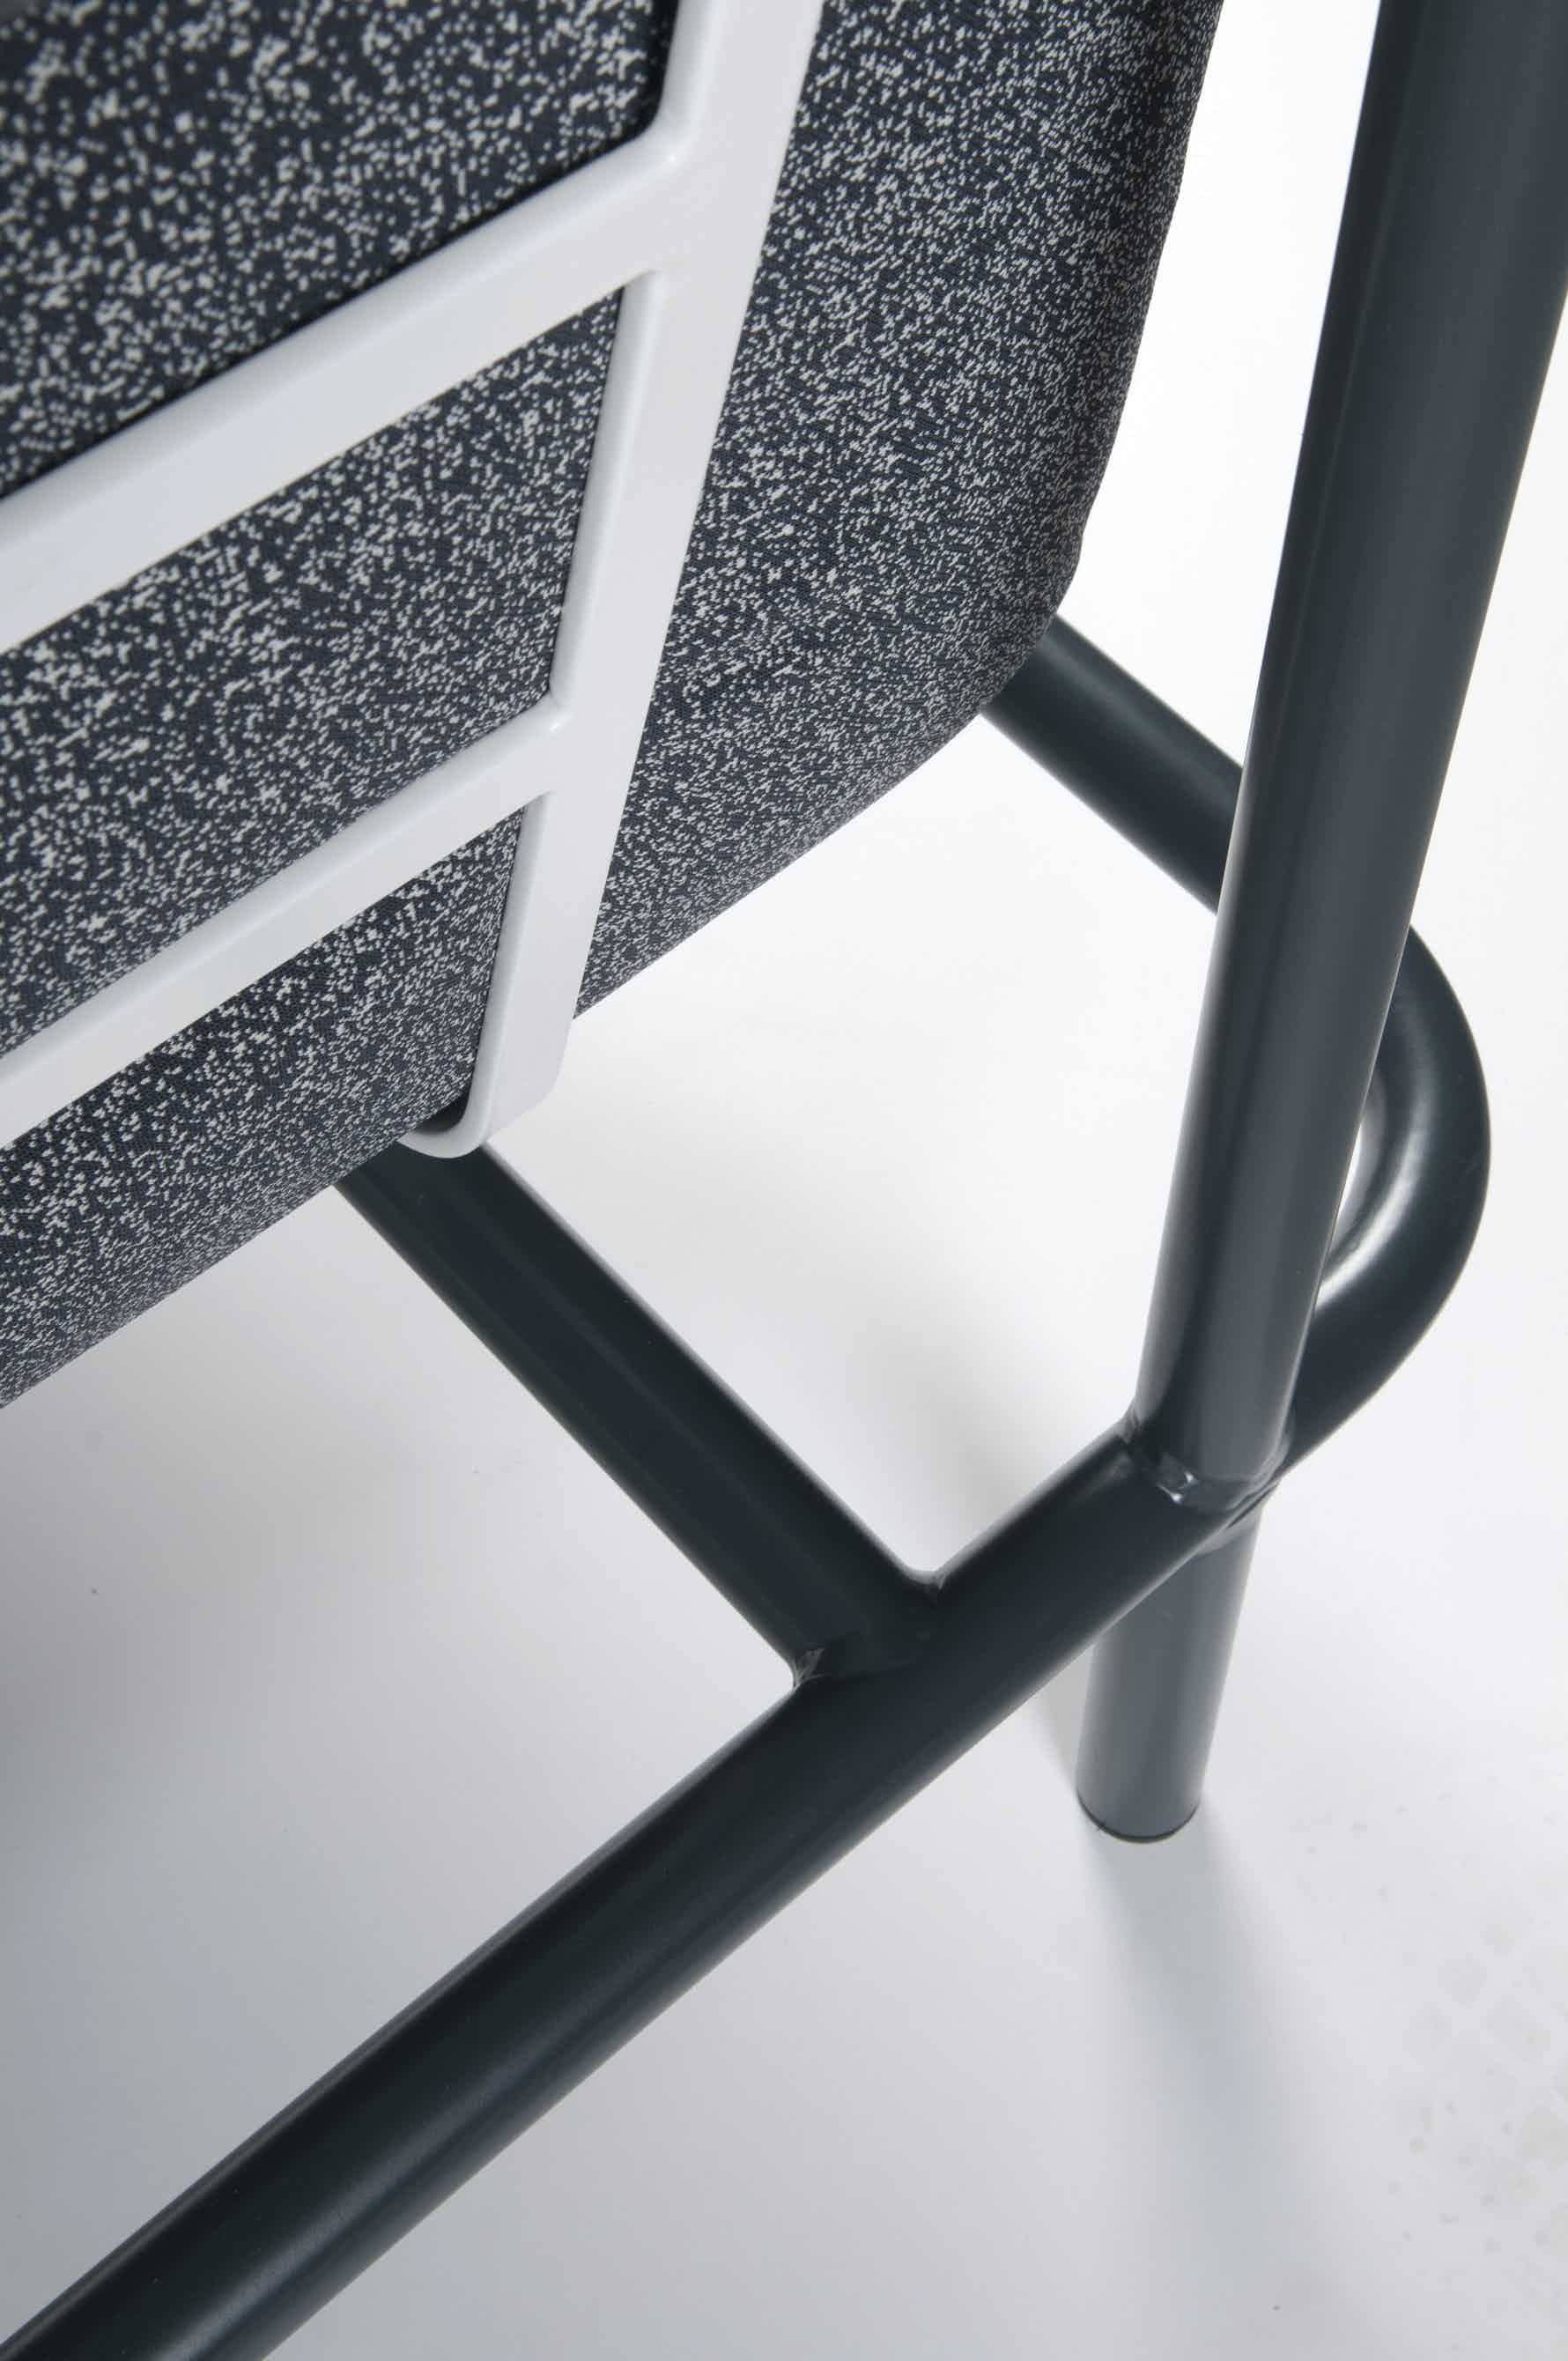 La-chance-furniture-x-ray-sofa-grey-detail-haute-living